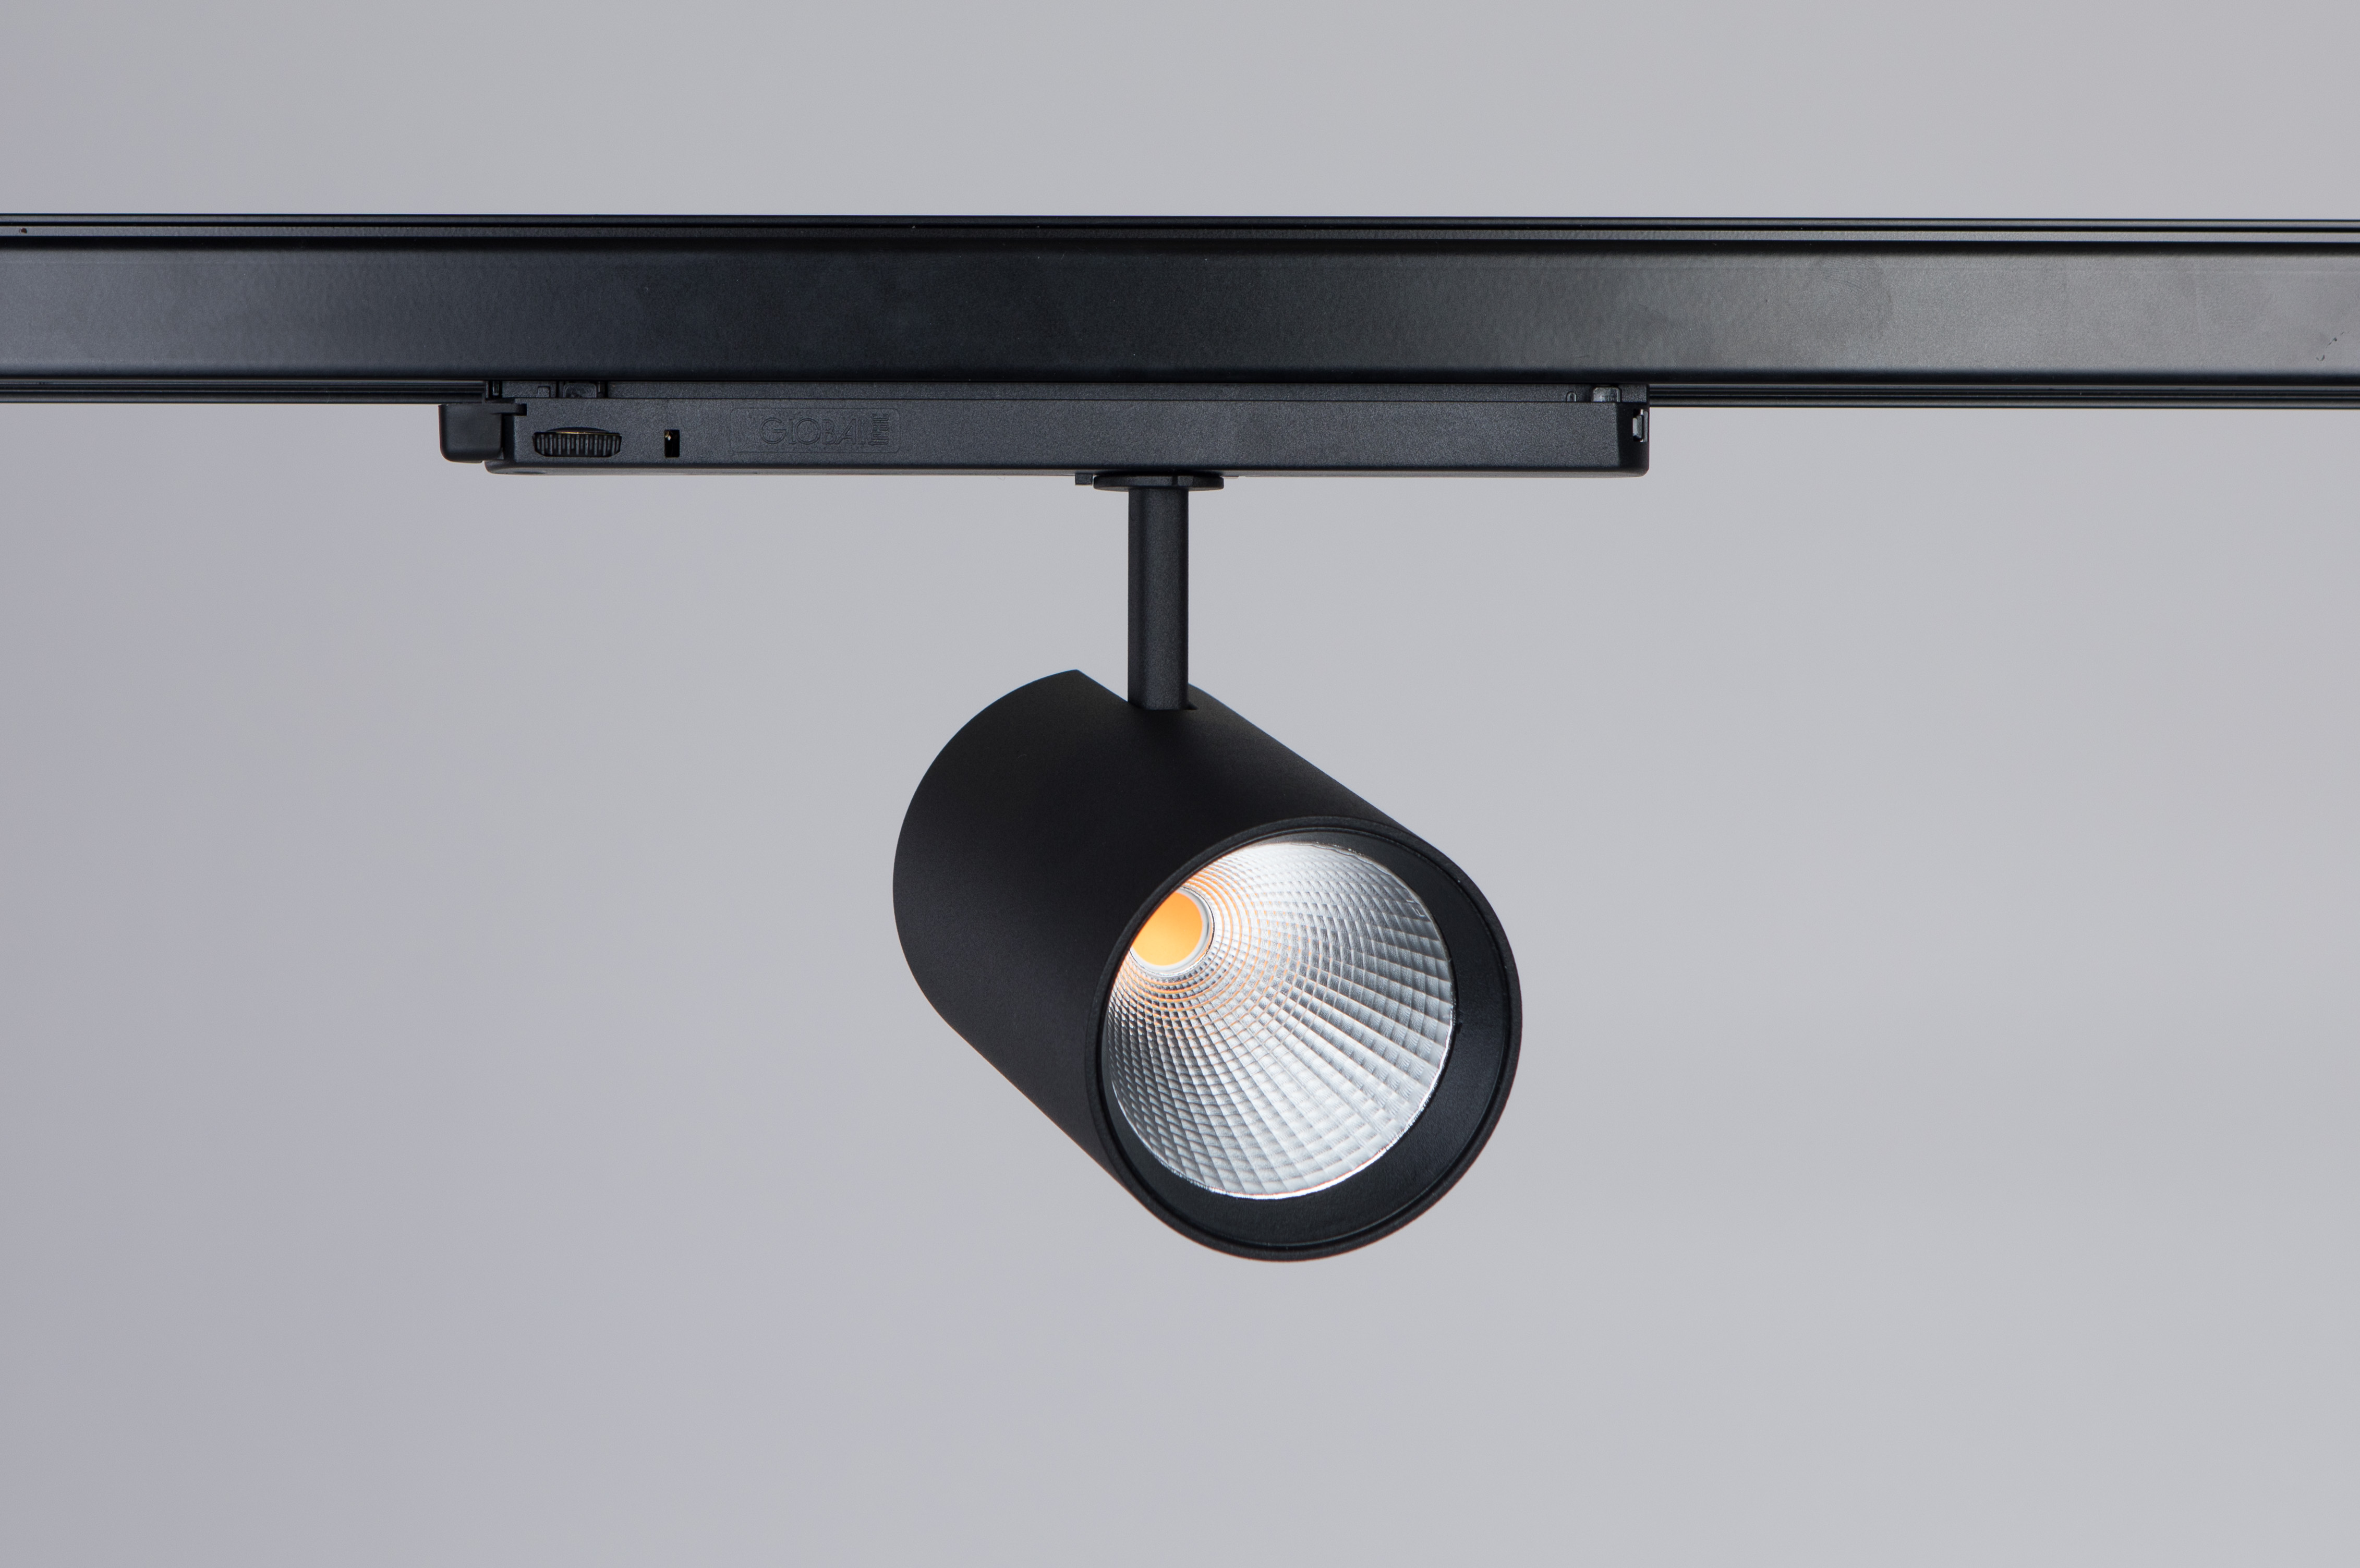 New Dingo Led Projector A Harmony Of Design And Evolution